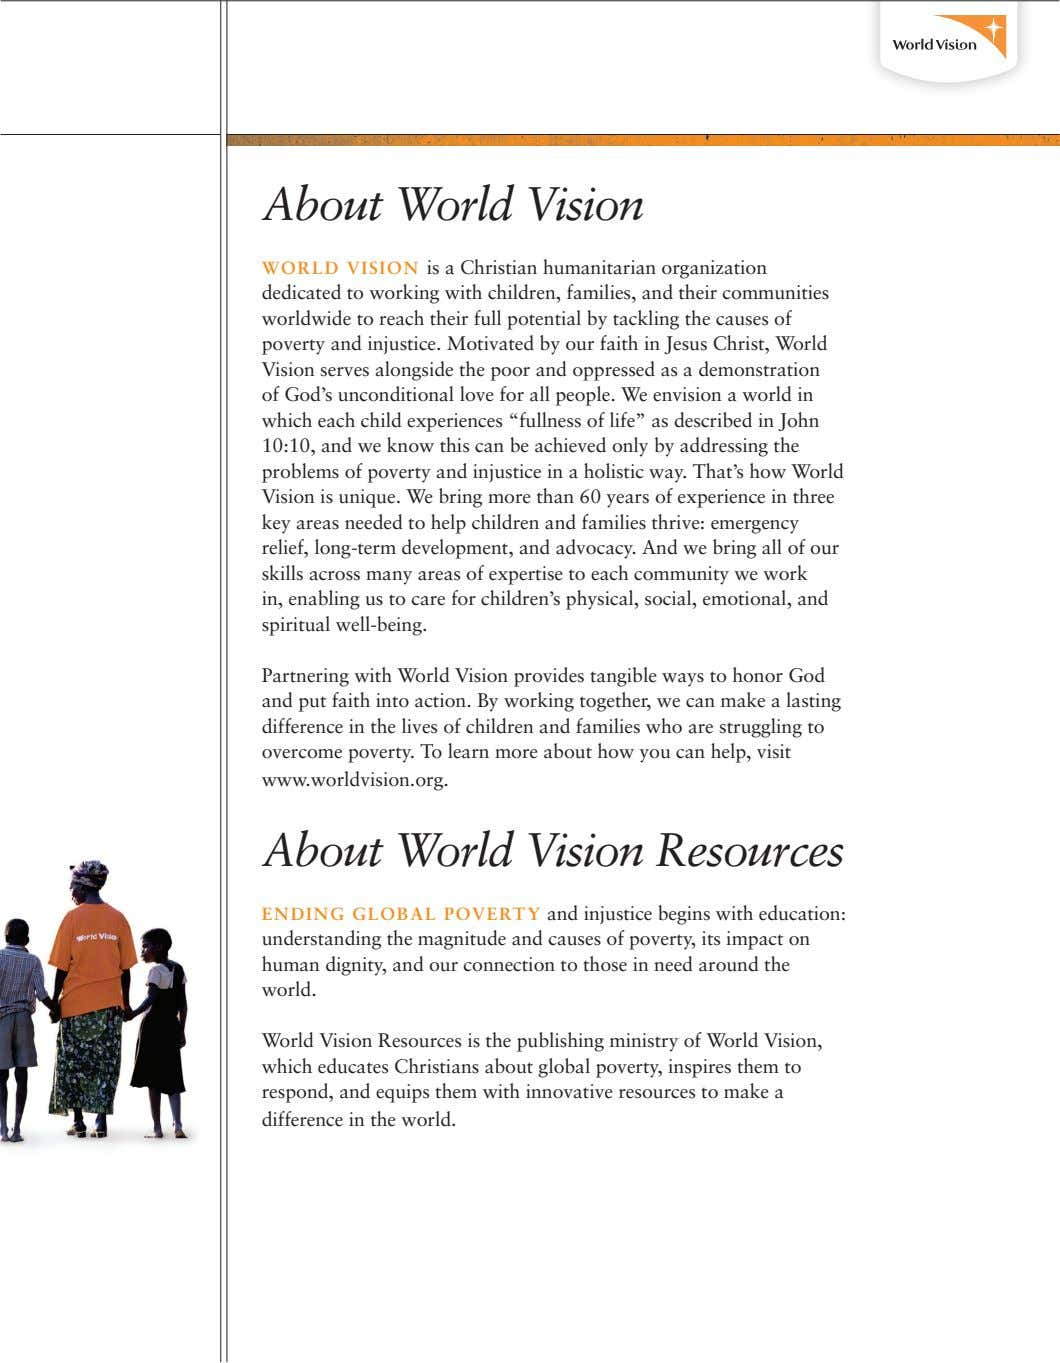 About World Vision Wo R ld Vision is a Christian humanitarian organization dedicated to working